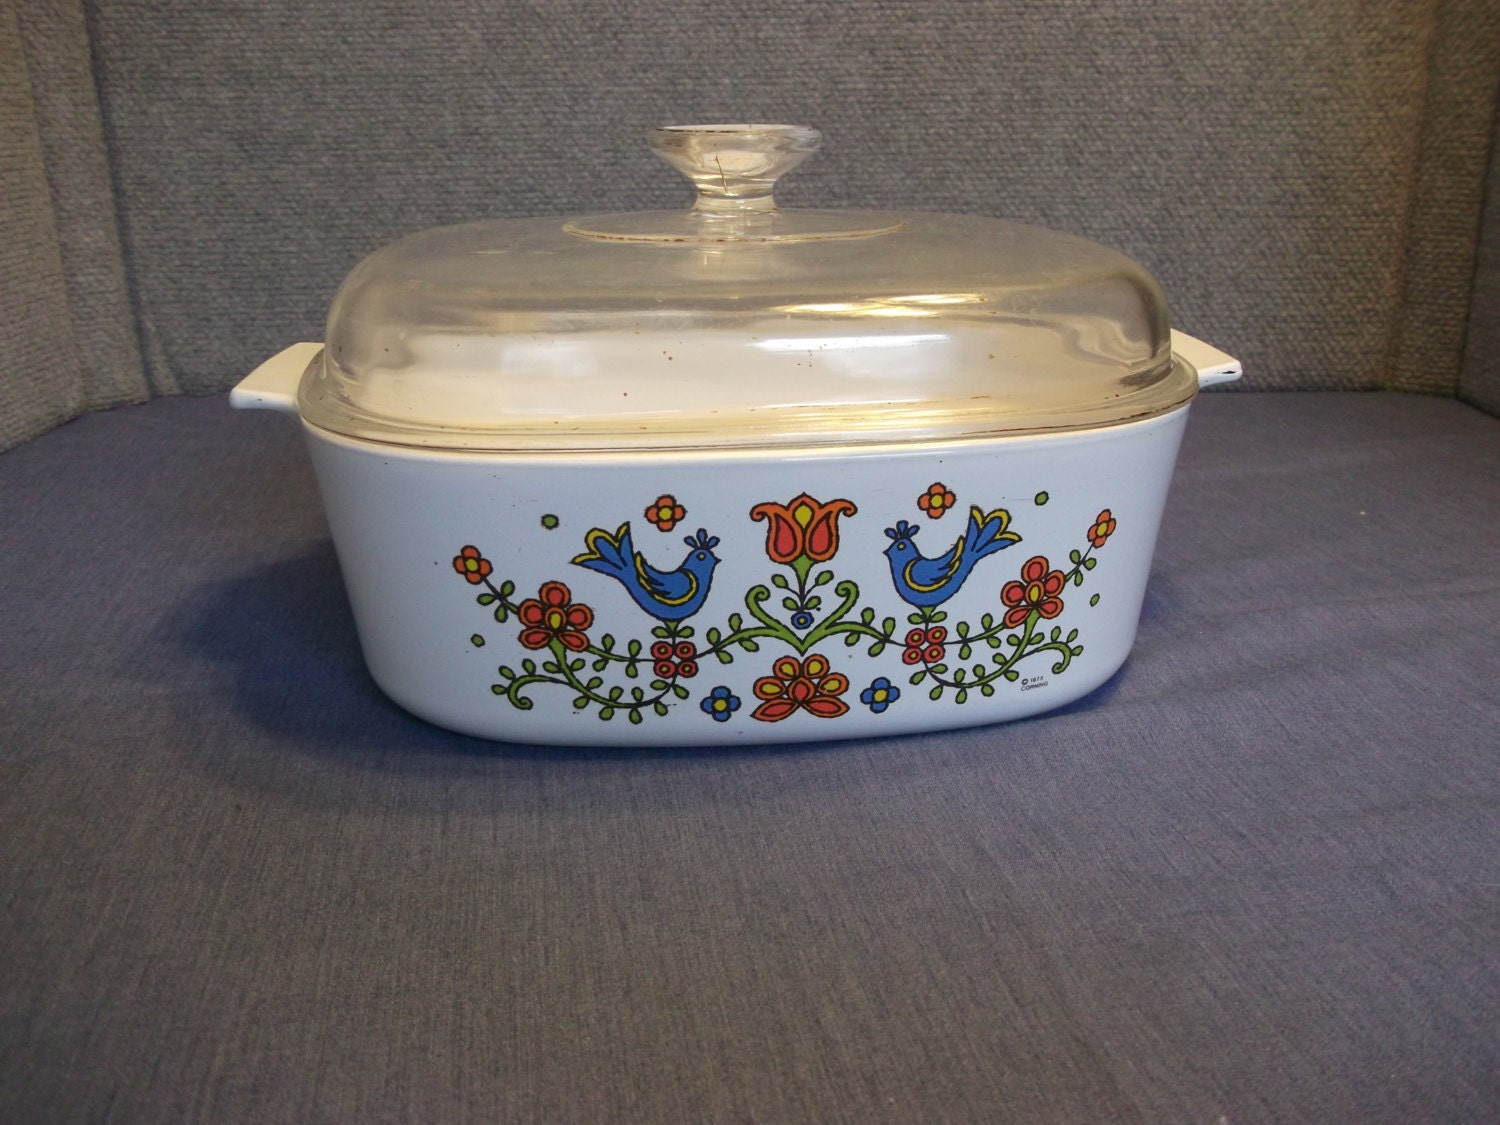 Corning Casserole Dish With Lid Vintage Corning Ware With